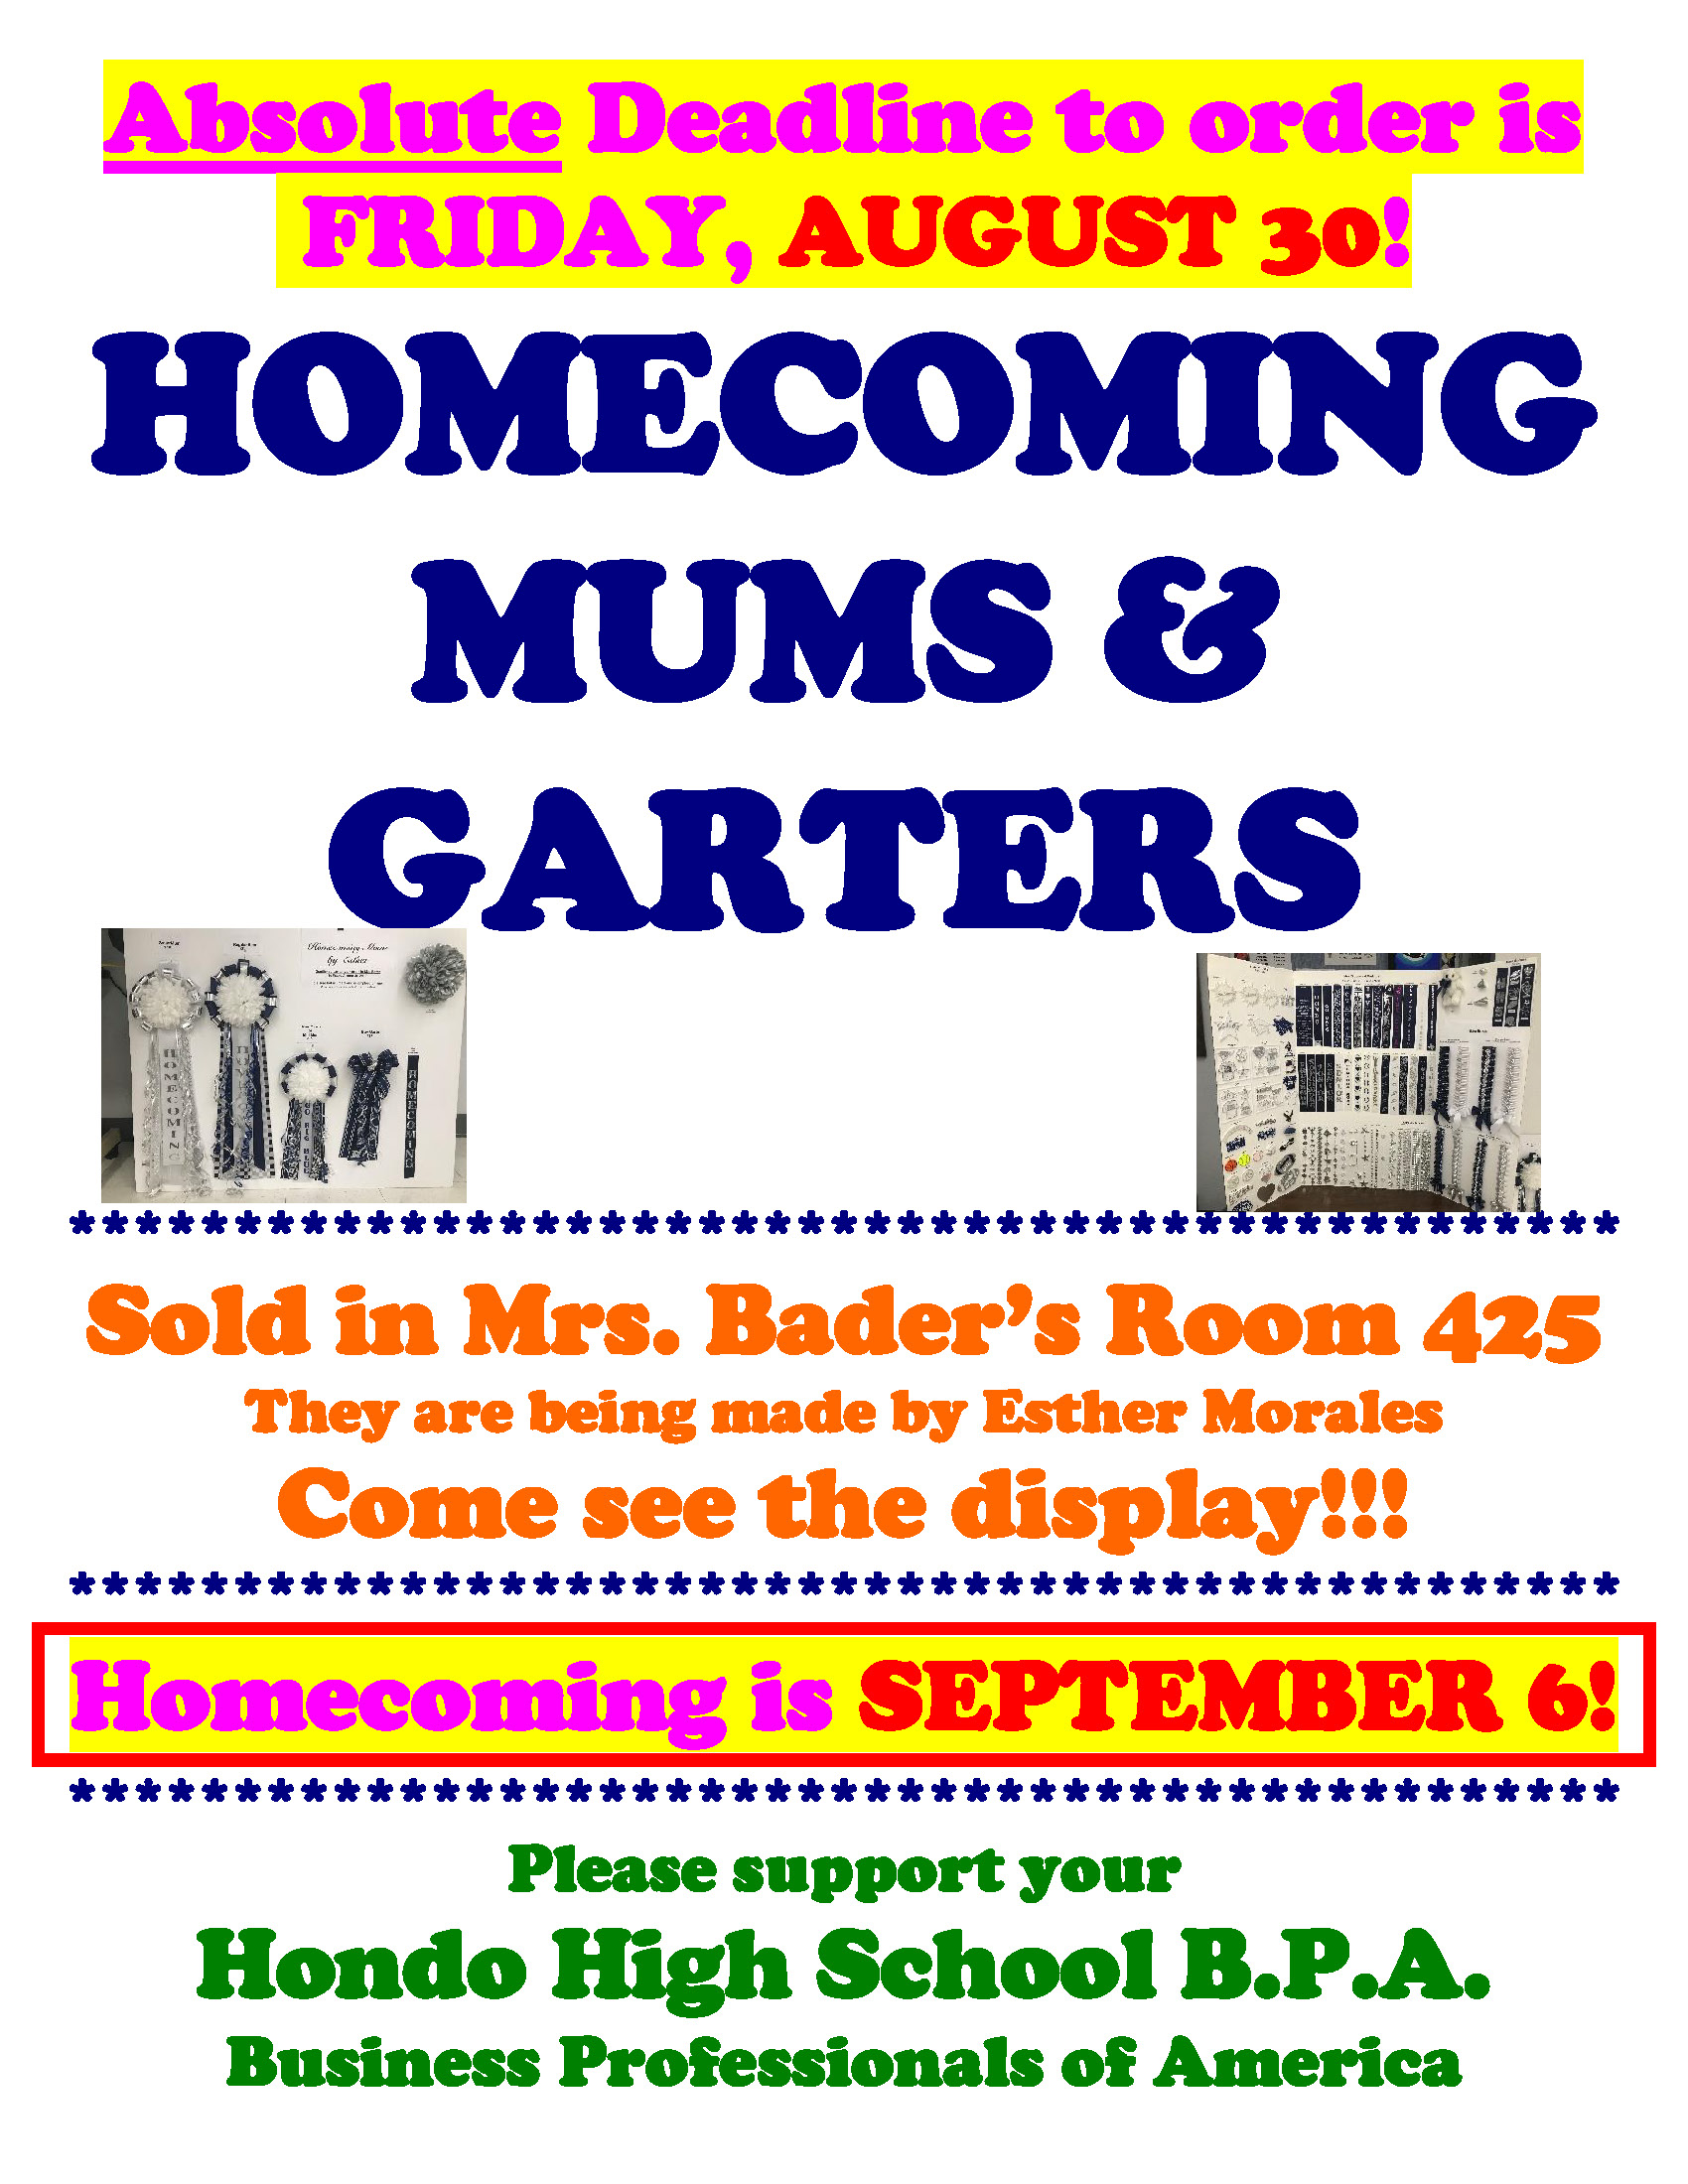 Absolute deadline to order is Friday, August 30! Homecoming mums & garters. Sold in Mrs. Bader's Room 425.  They are being made by Esther Morales Come see the display!  Homecoming is September 6th! Please support your Hondo High School BPA. Business professionals of America.